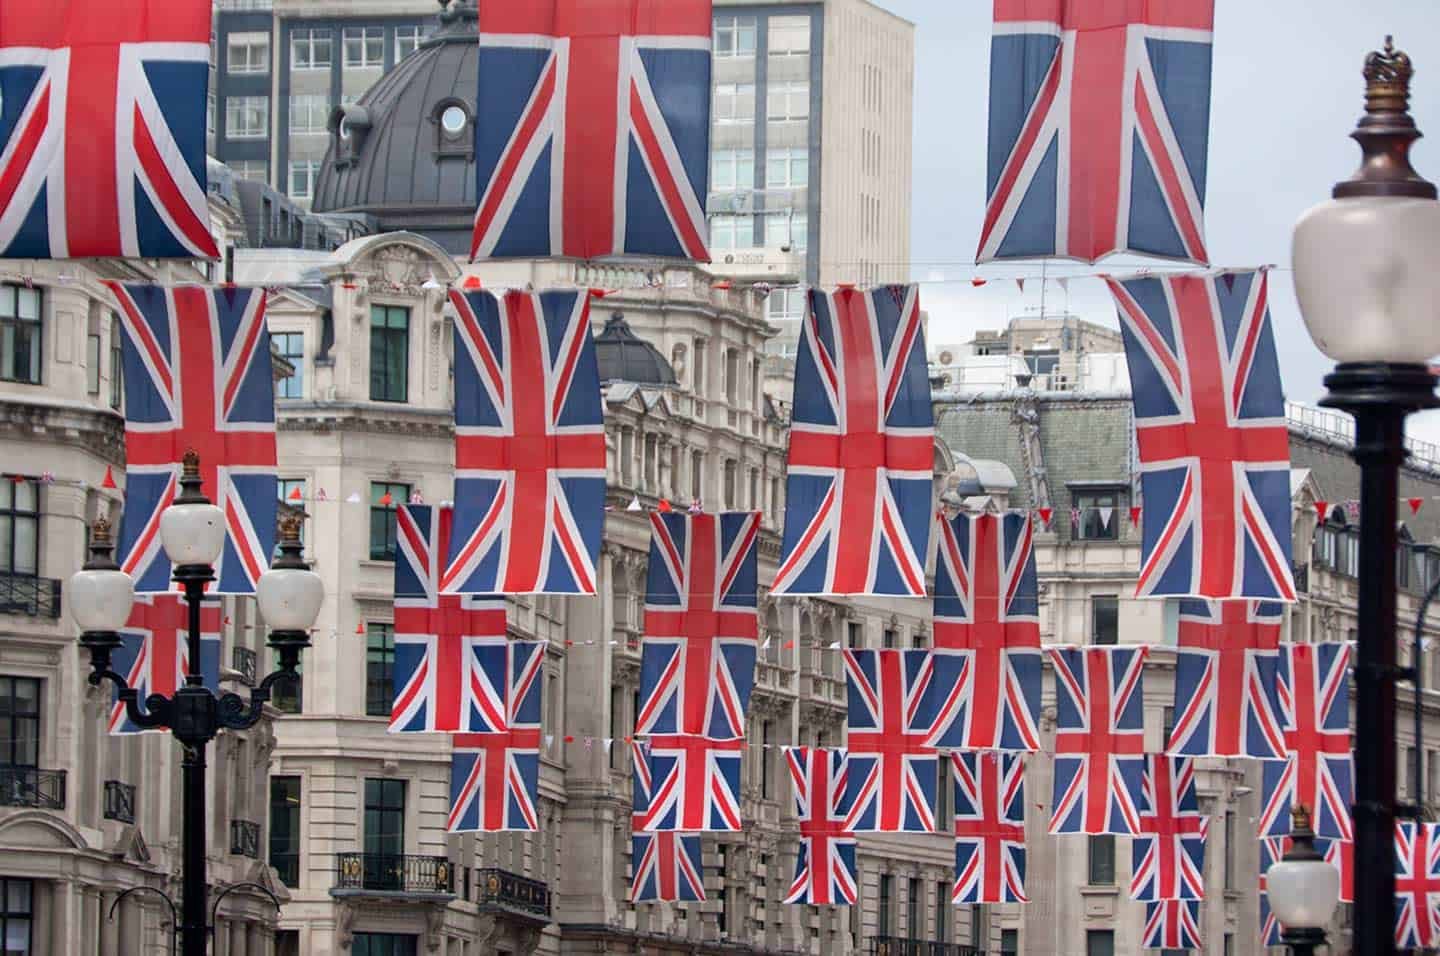 Image of Union Jack flags hanging along Regent Street, London